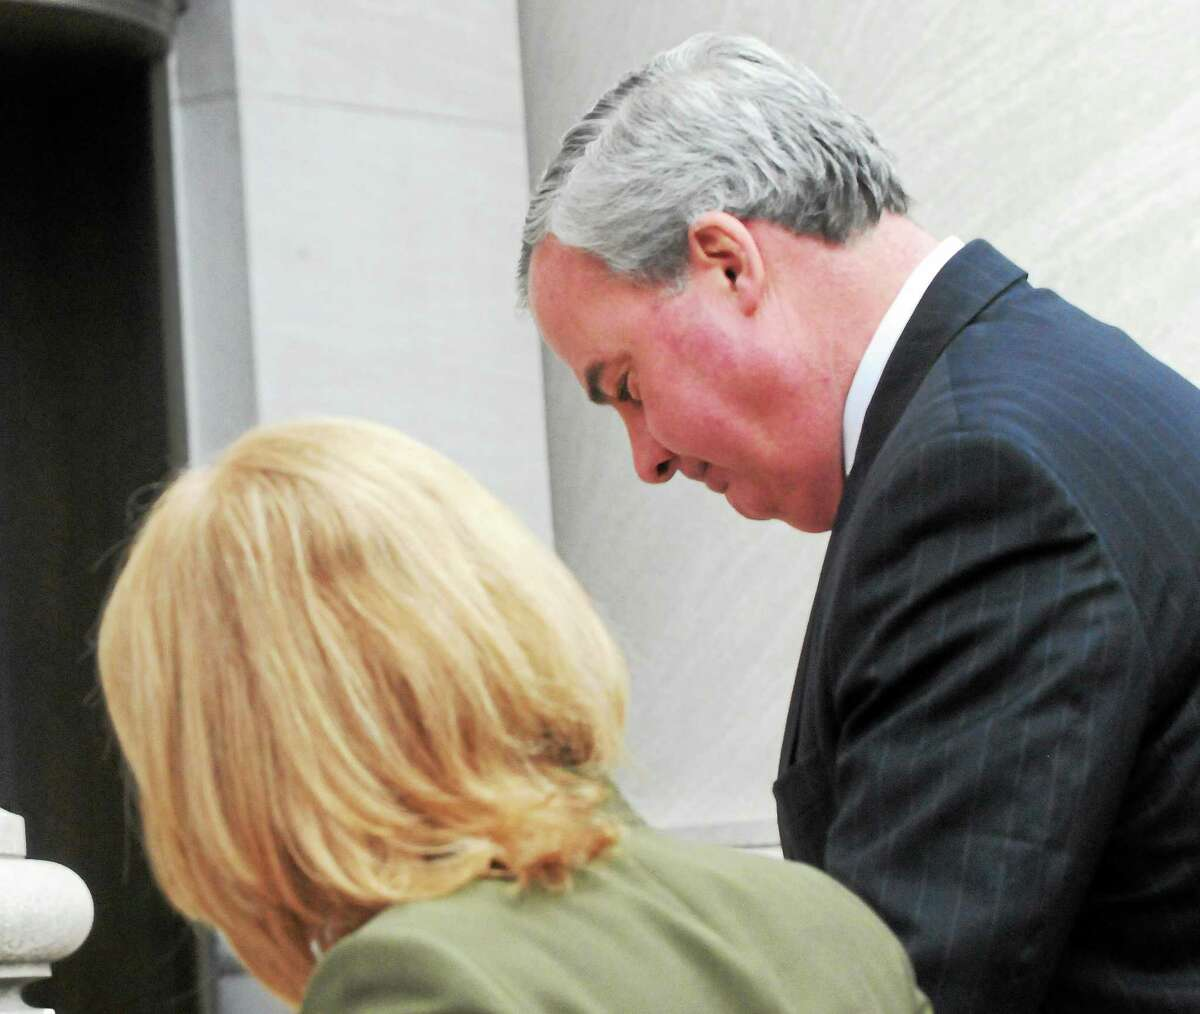 In this April 11 file photo, former Gov. John G. Rowland, right, arrives at the Federal Courthouse in New Haven.